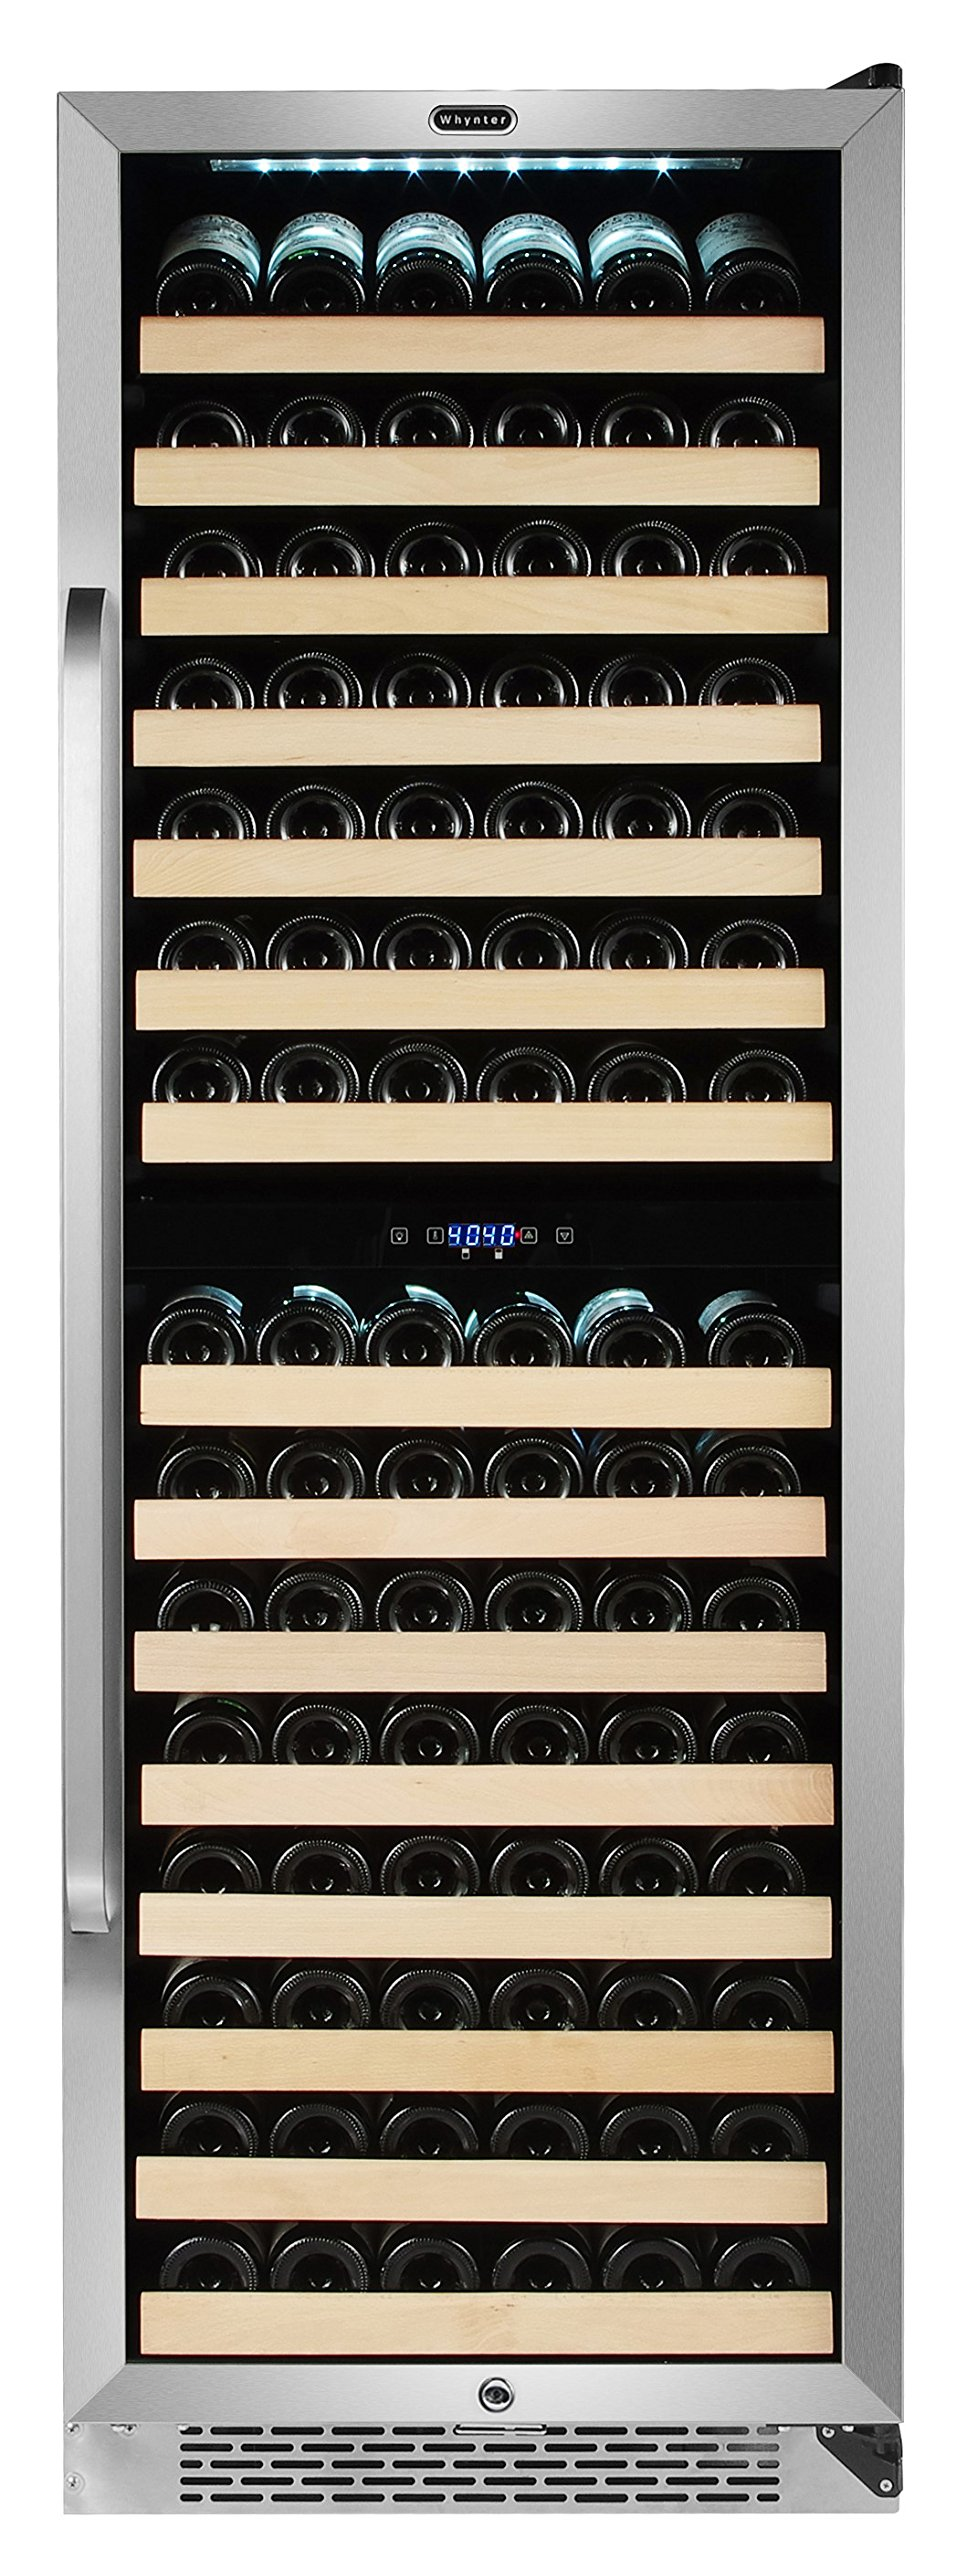 Whynter Stainless Steel BWR-1642DZ 164 Bottle Built-in Dual Zone Compressor Wine Refrigerator with Display Rack, One Size by Whynter